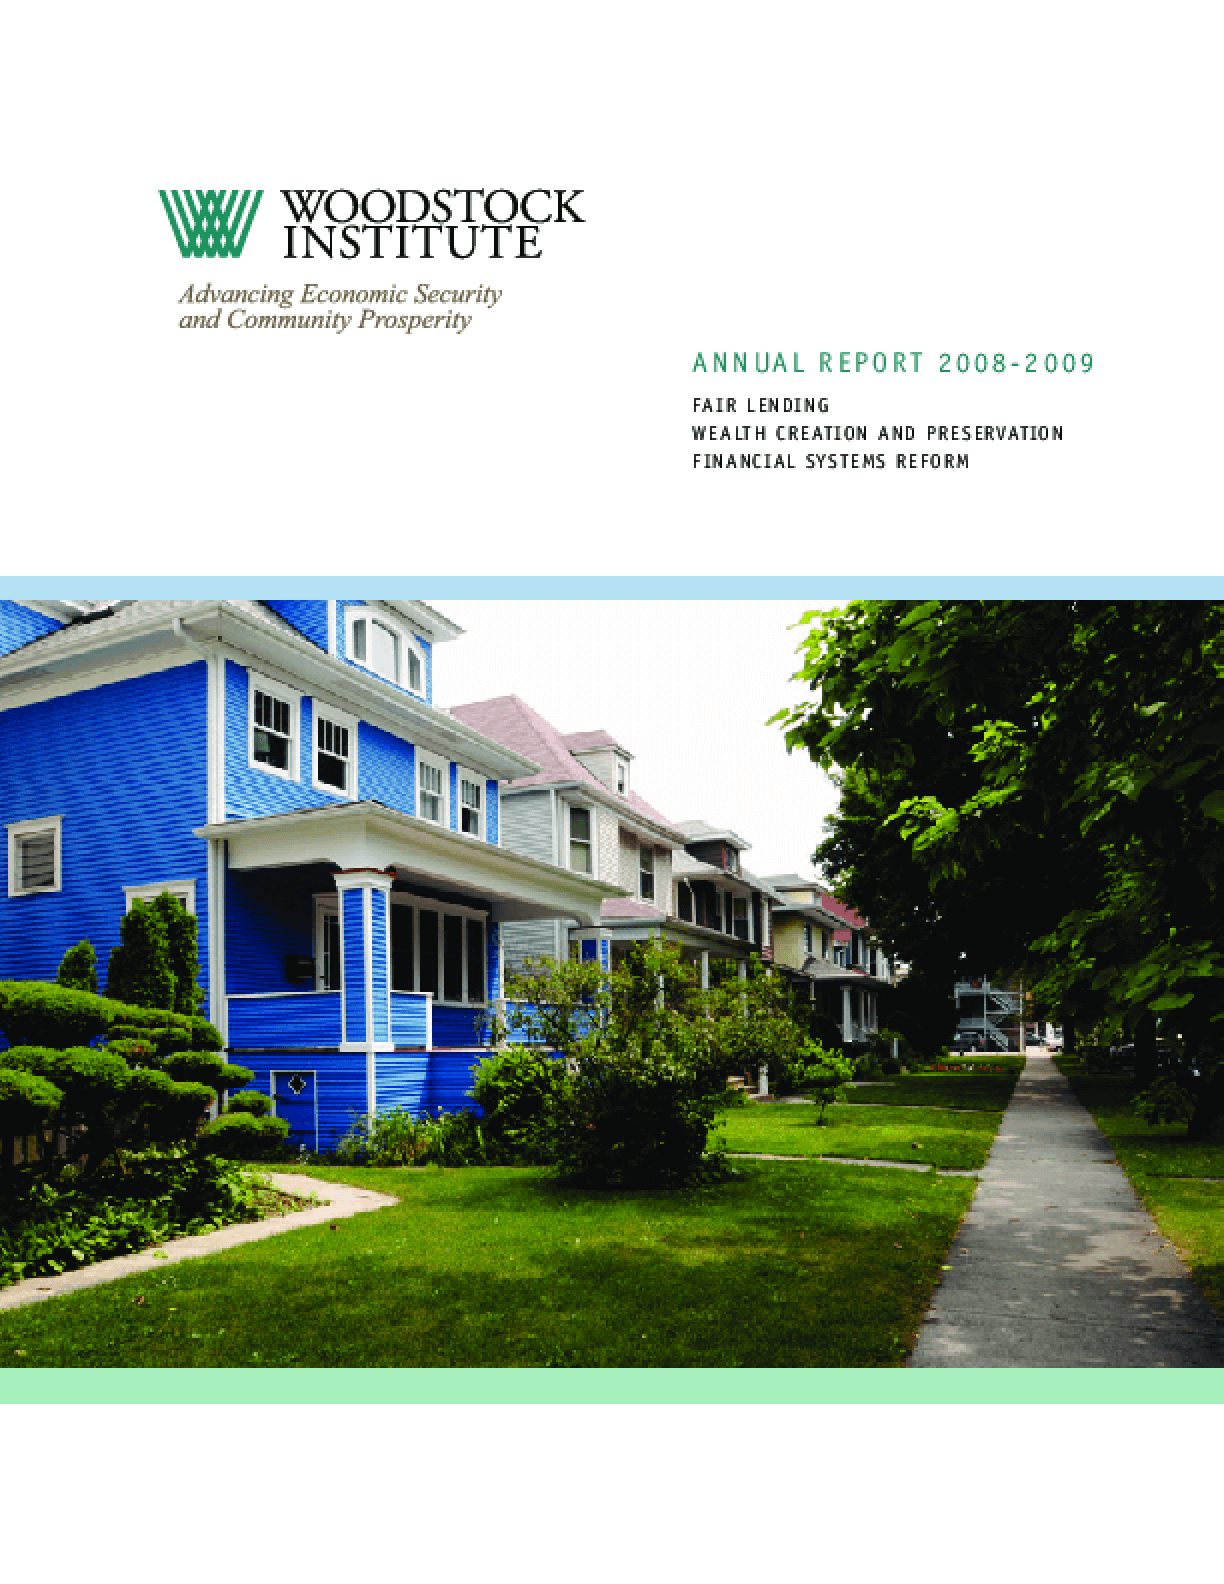 Woodstock Institute 2008-2009 Annual Report